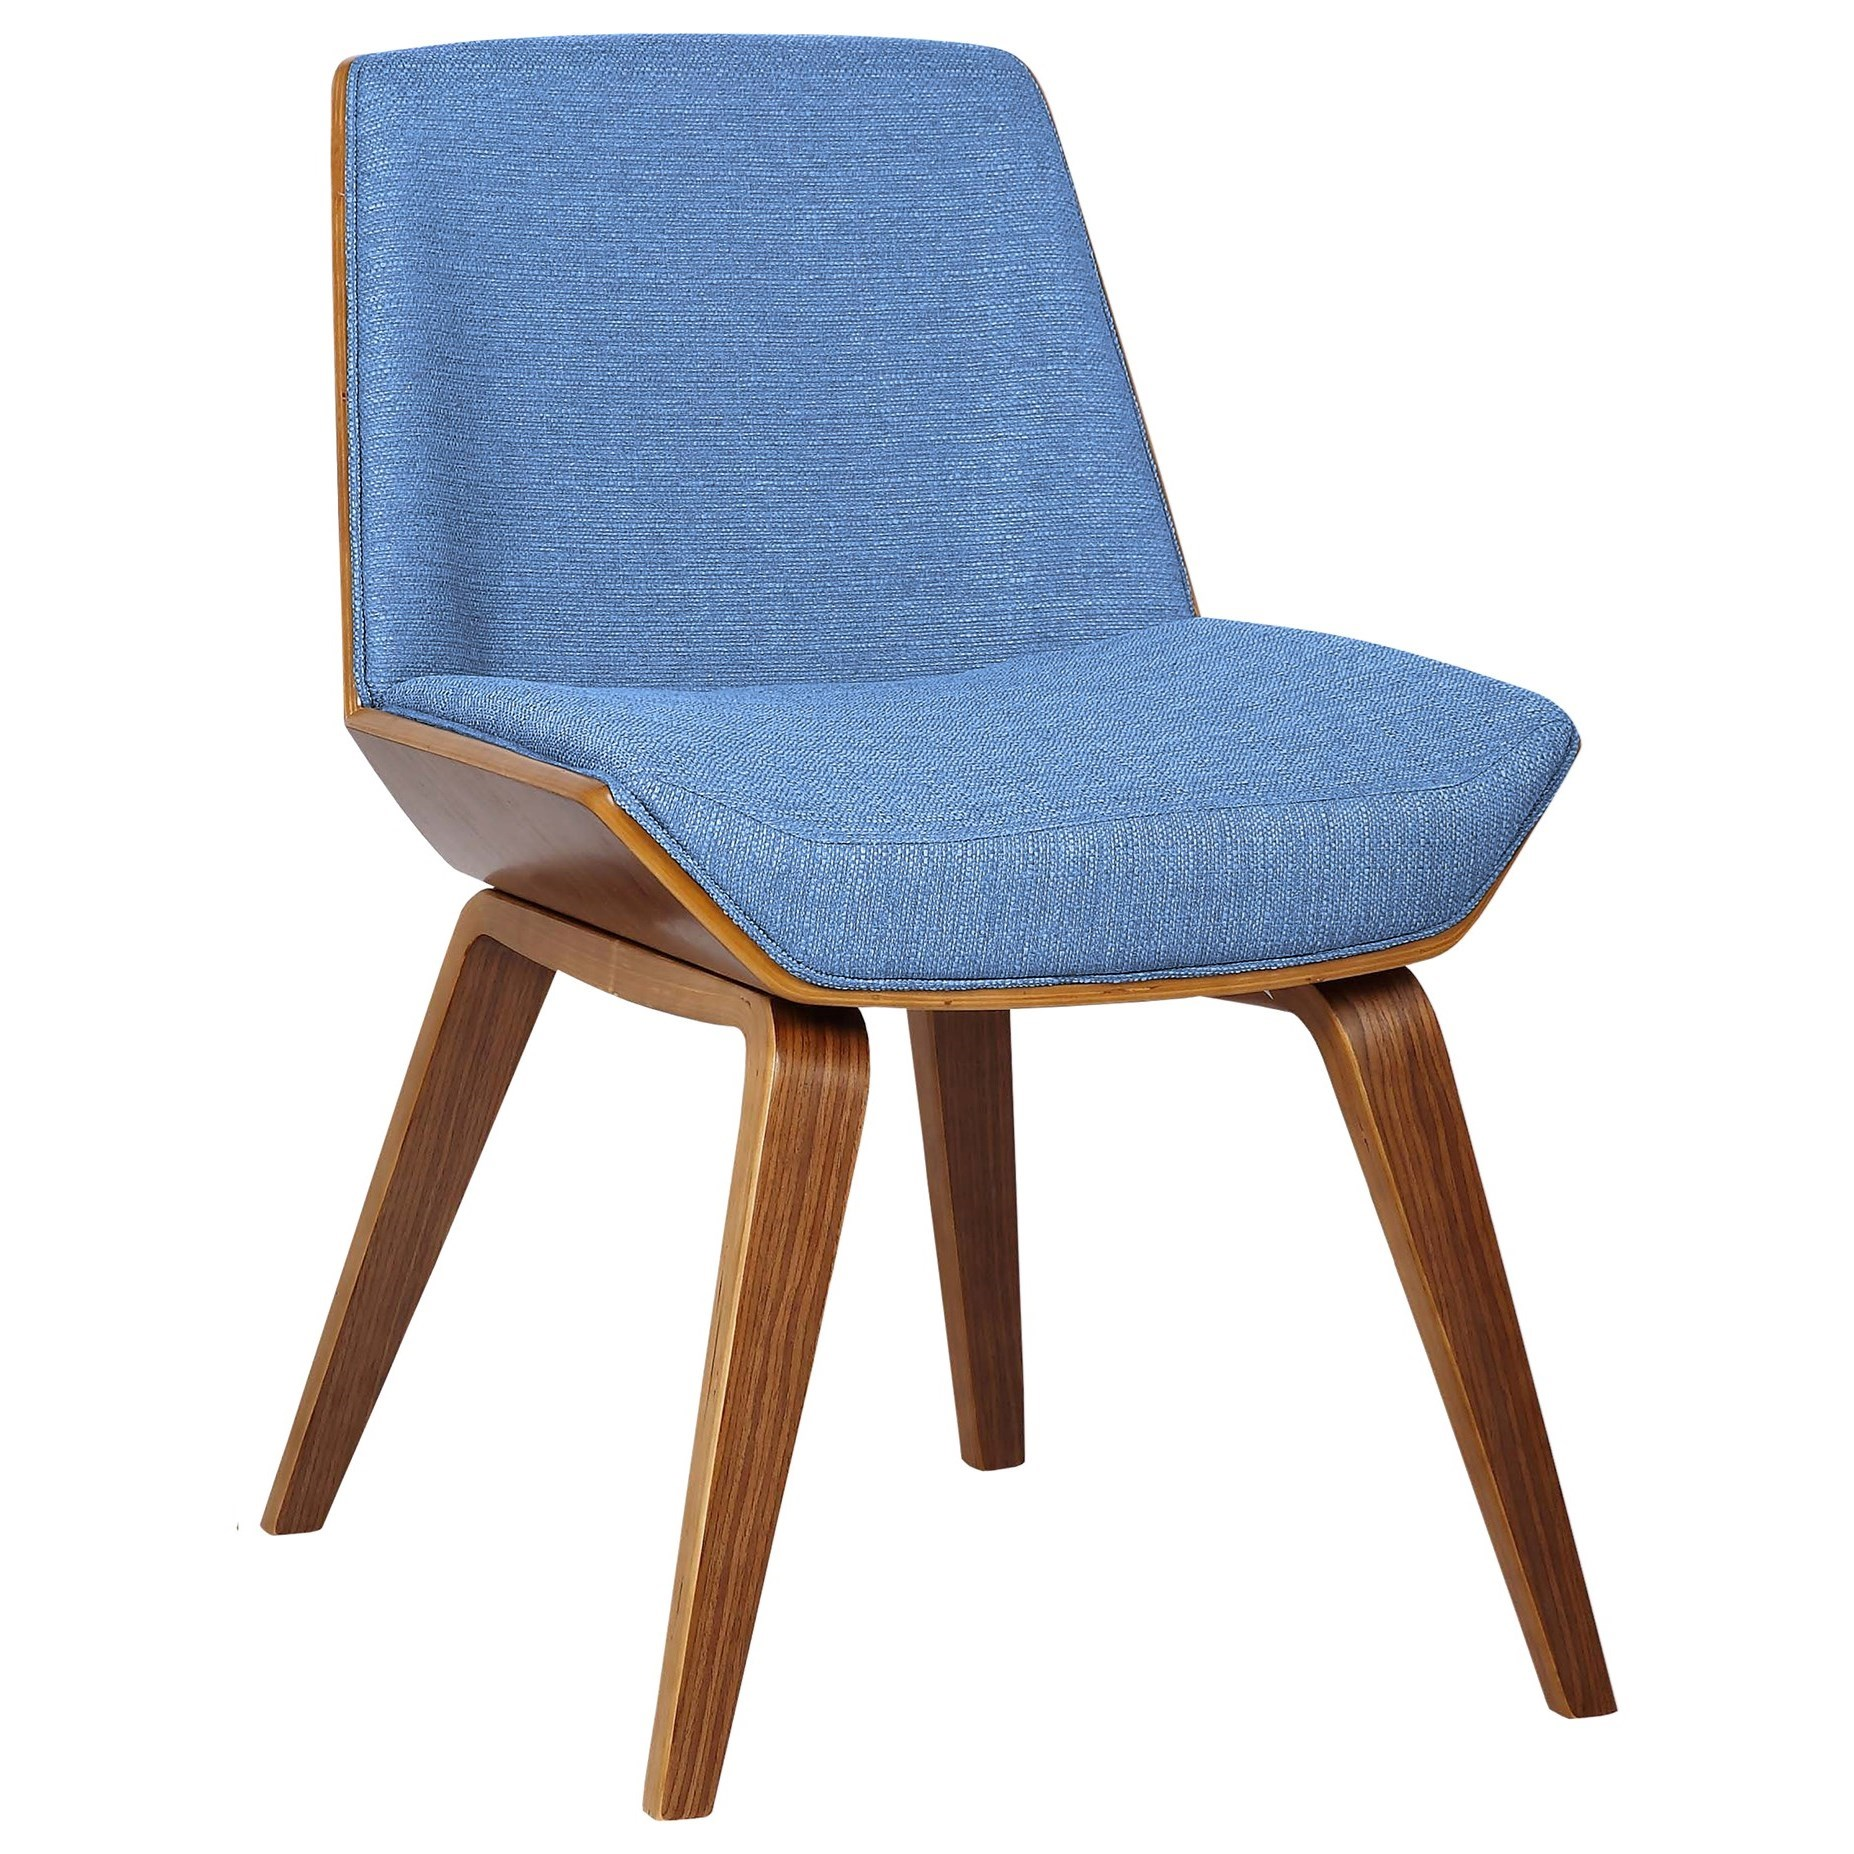 Agi Mid-Century Side Chair in Blue Fabric by Armen Living at Fisher Home Furnishings